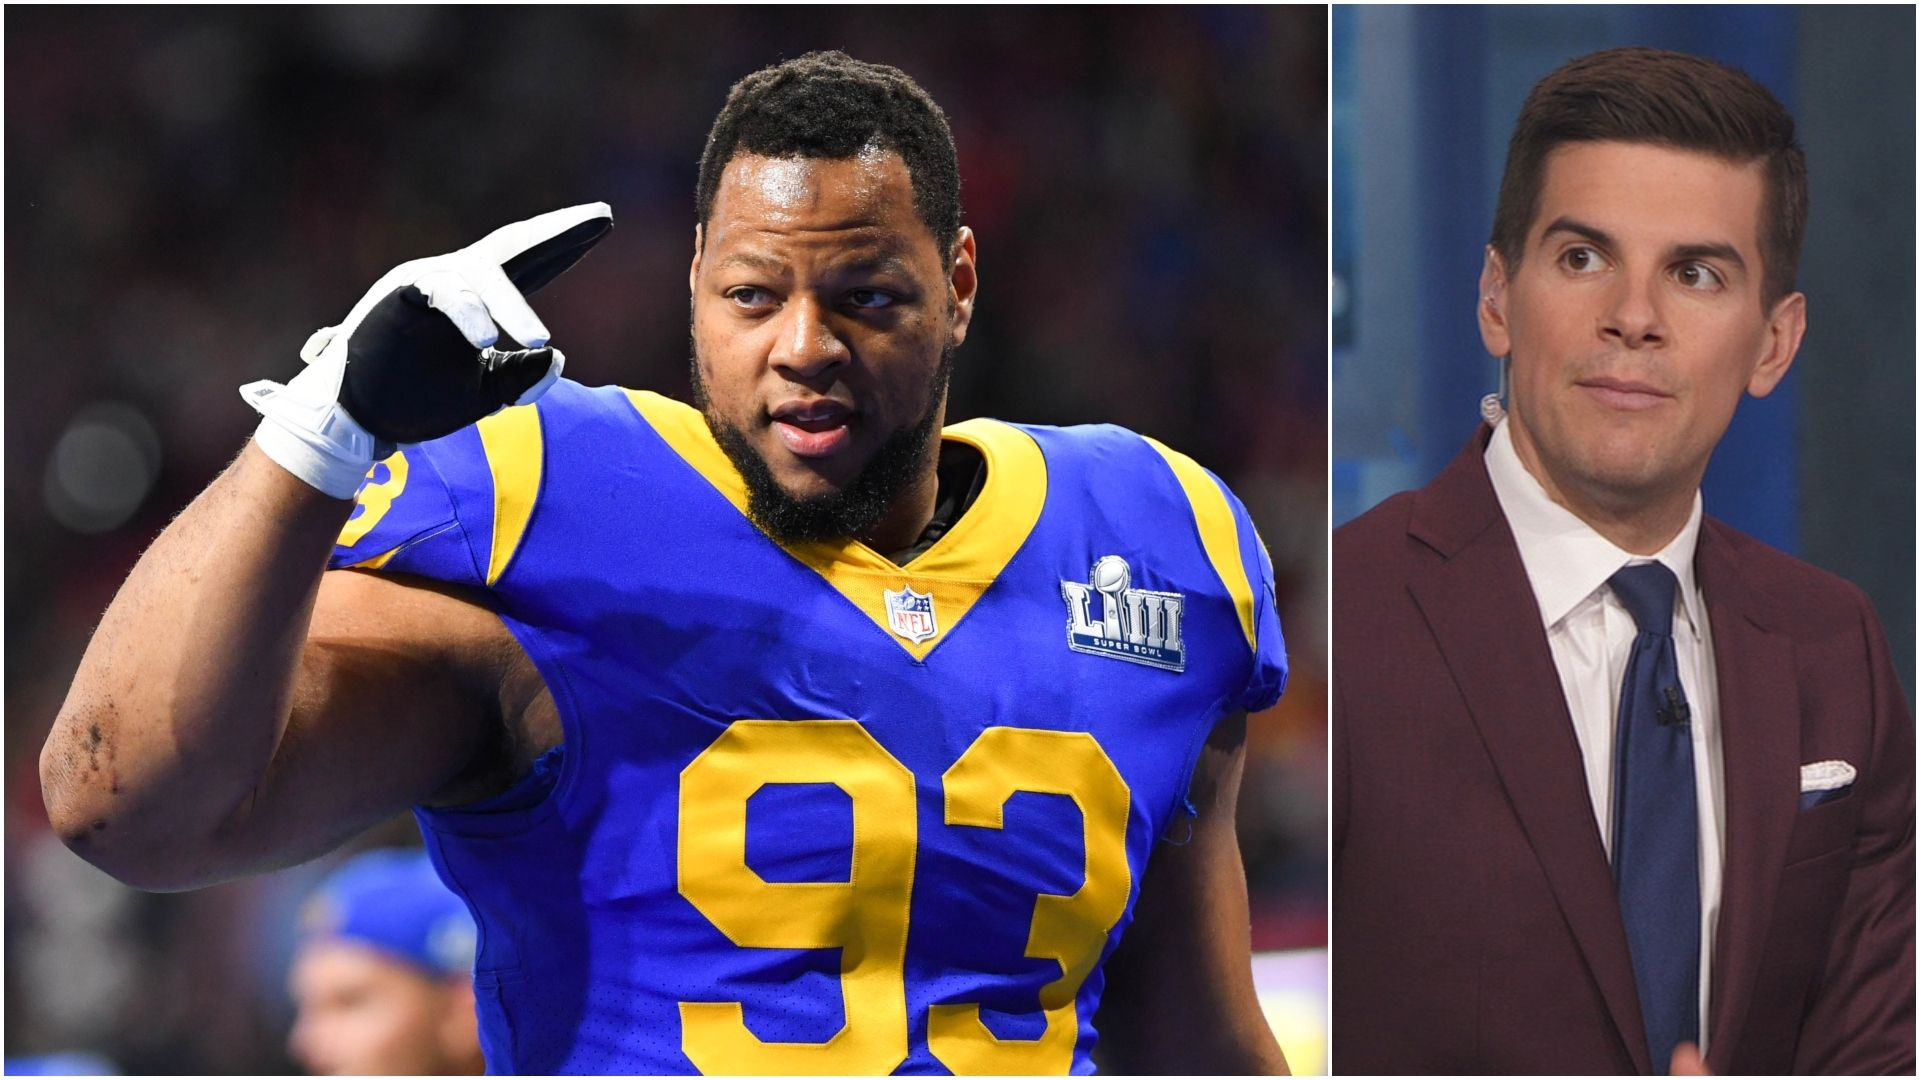 Yates: Suh is dominant when he wants to be